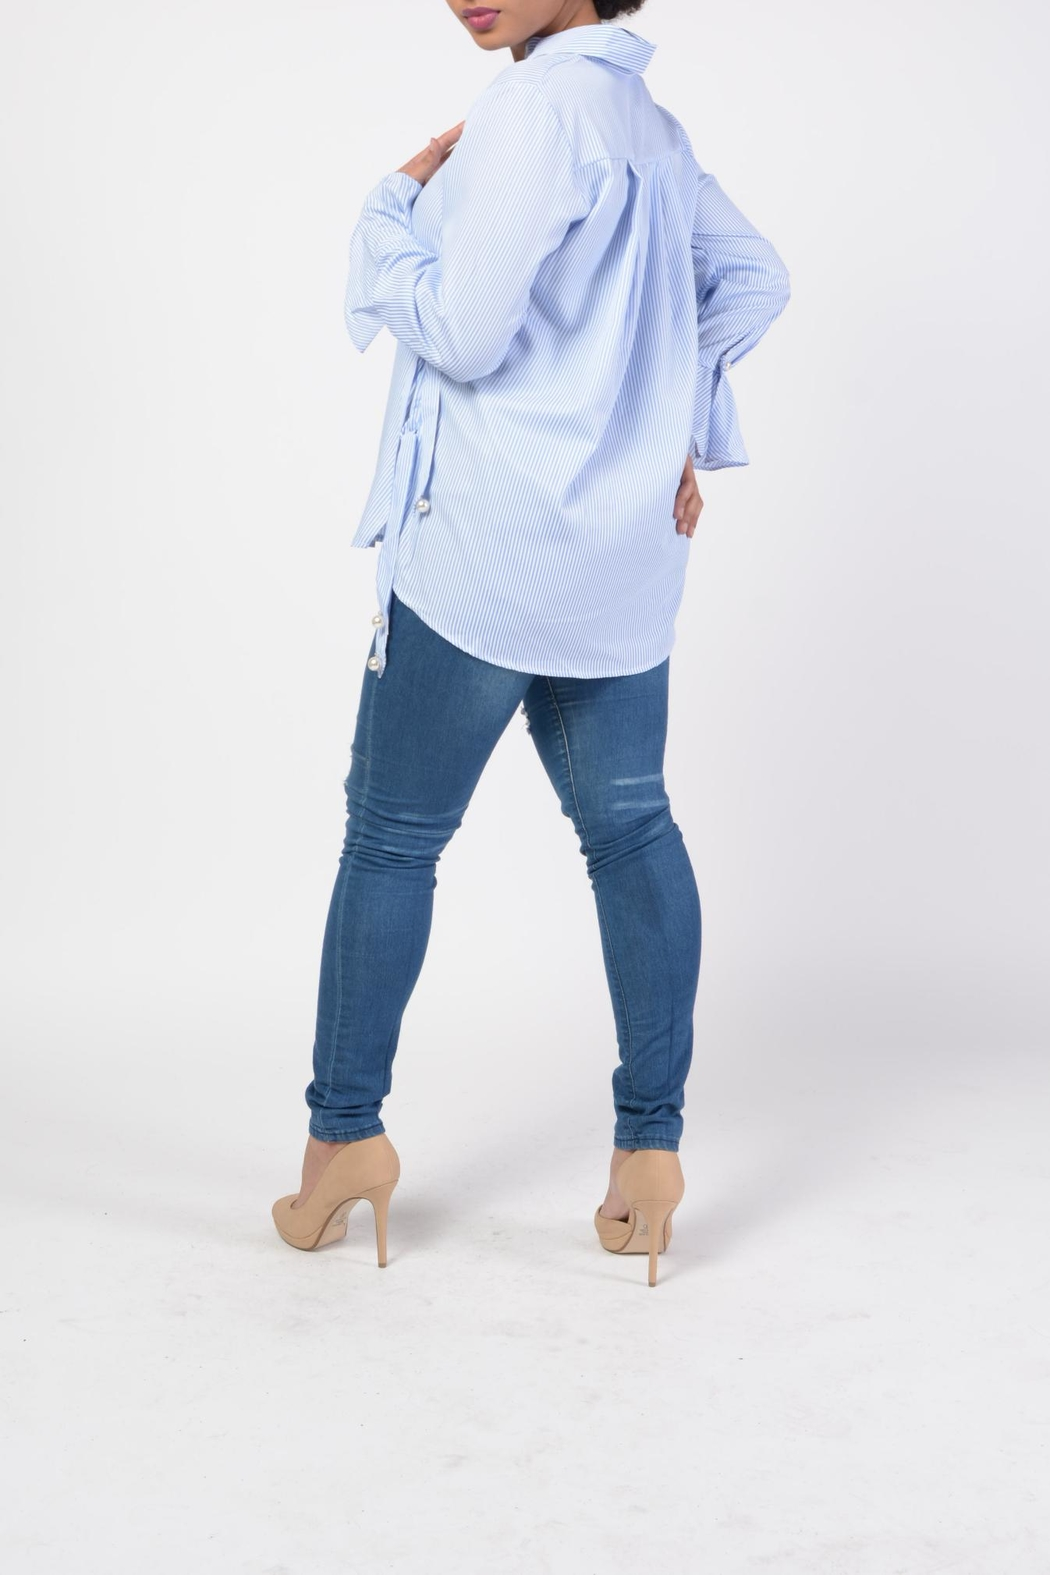 MODChic Couture Pinstriped Pearl Top - Side Cropped Image